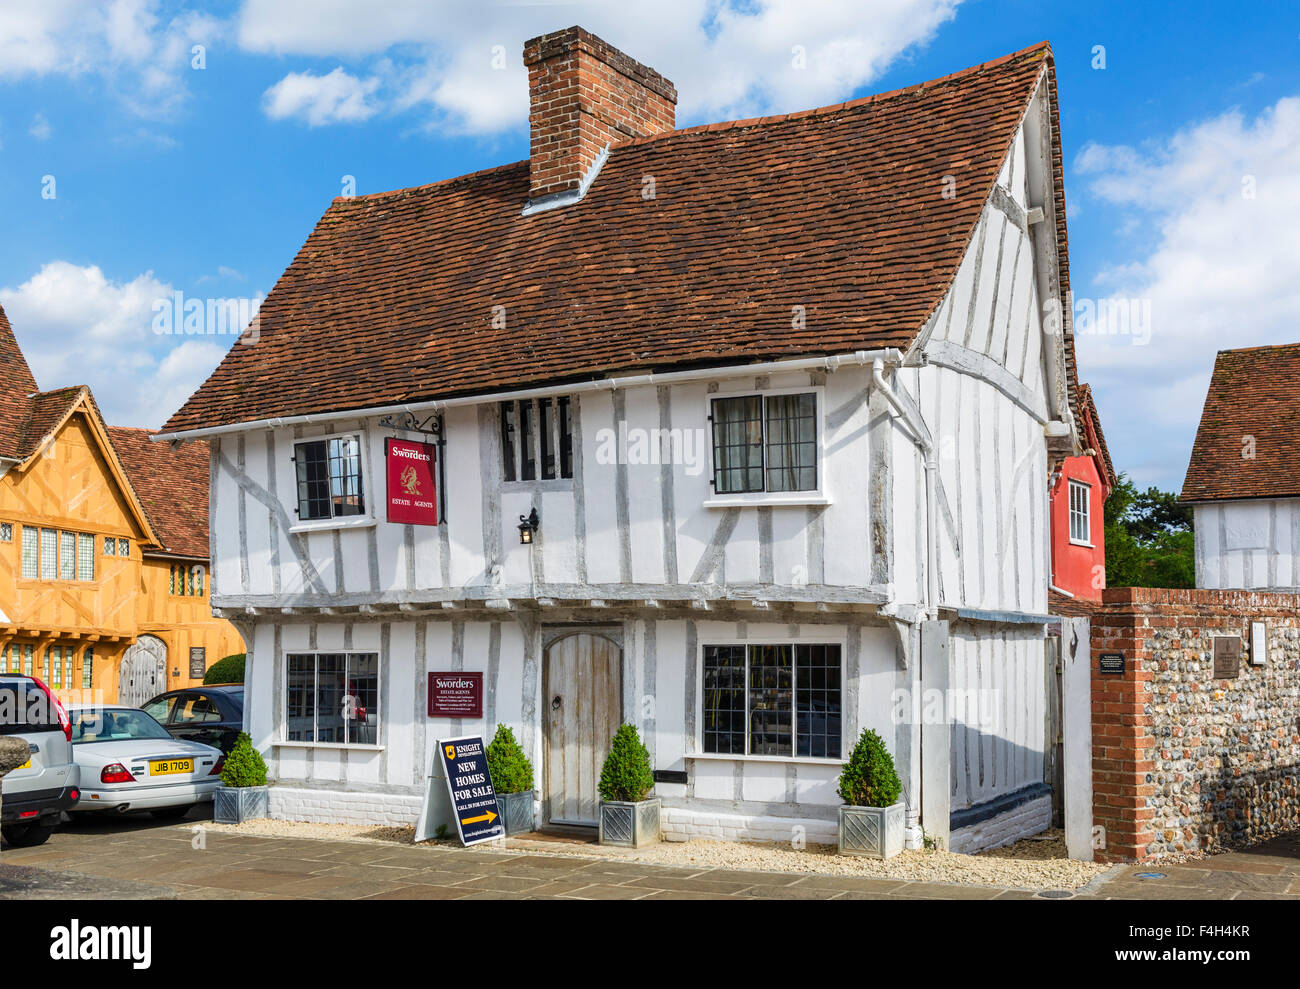 Old timber-famed building on Market Lane in the village centre, Lavenham, Suffolk, England, UK - Stock Image